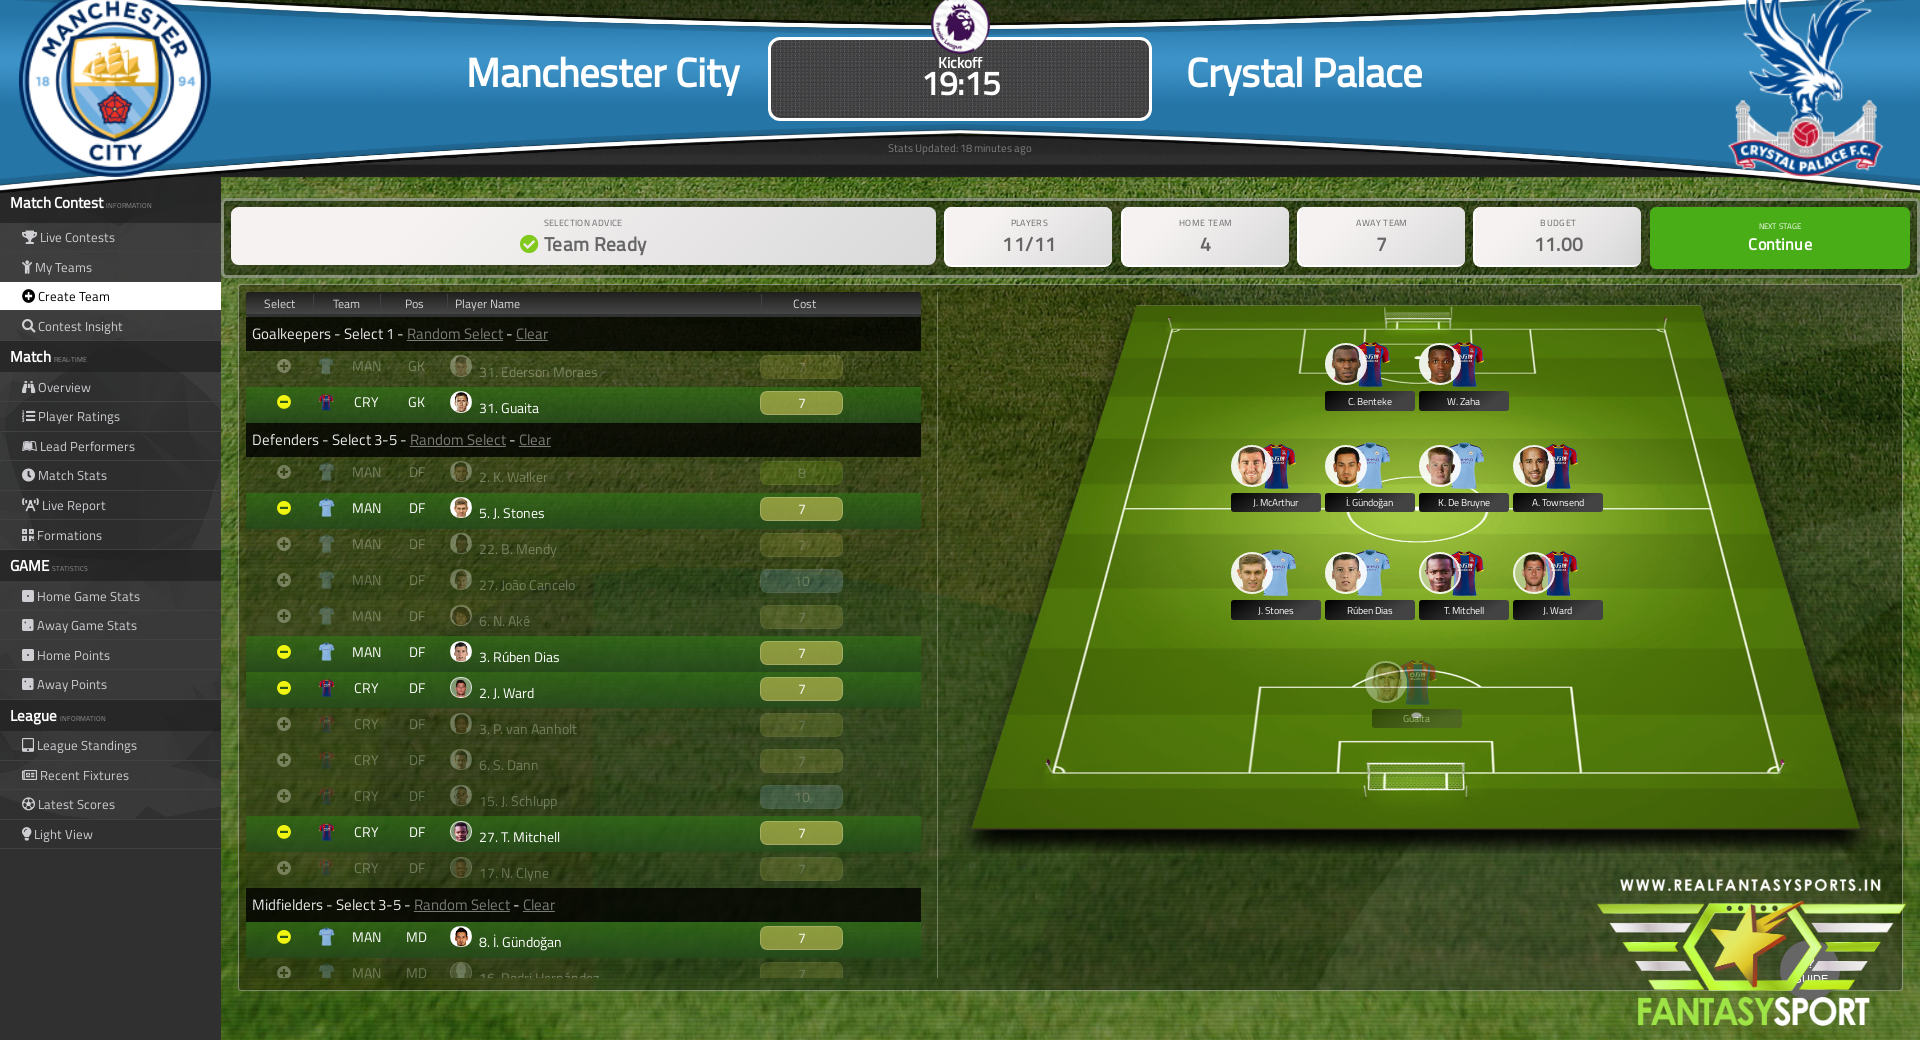 Manchester City vs Crystal Palace dream team prediction (17th January 2021)